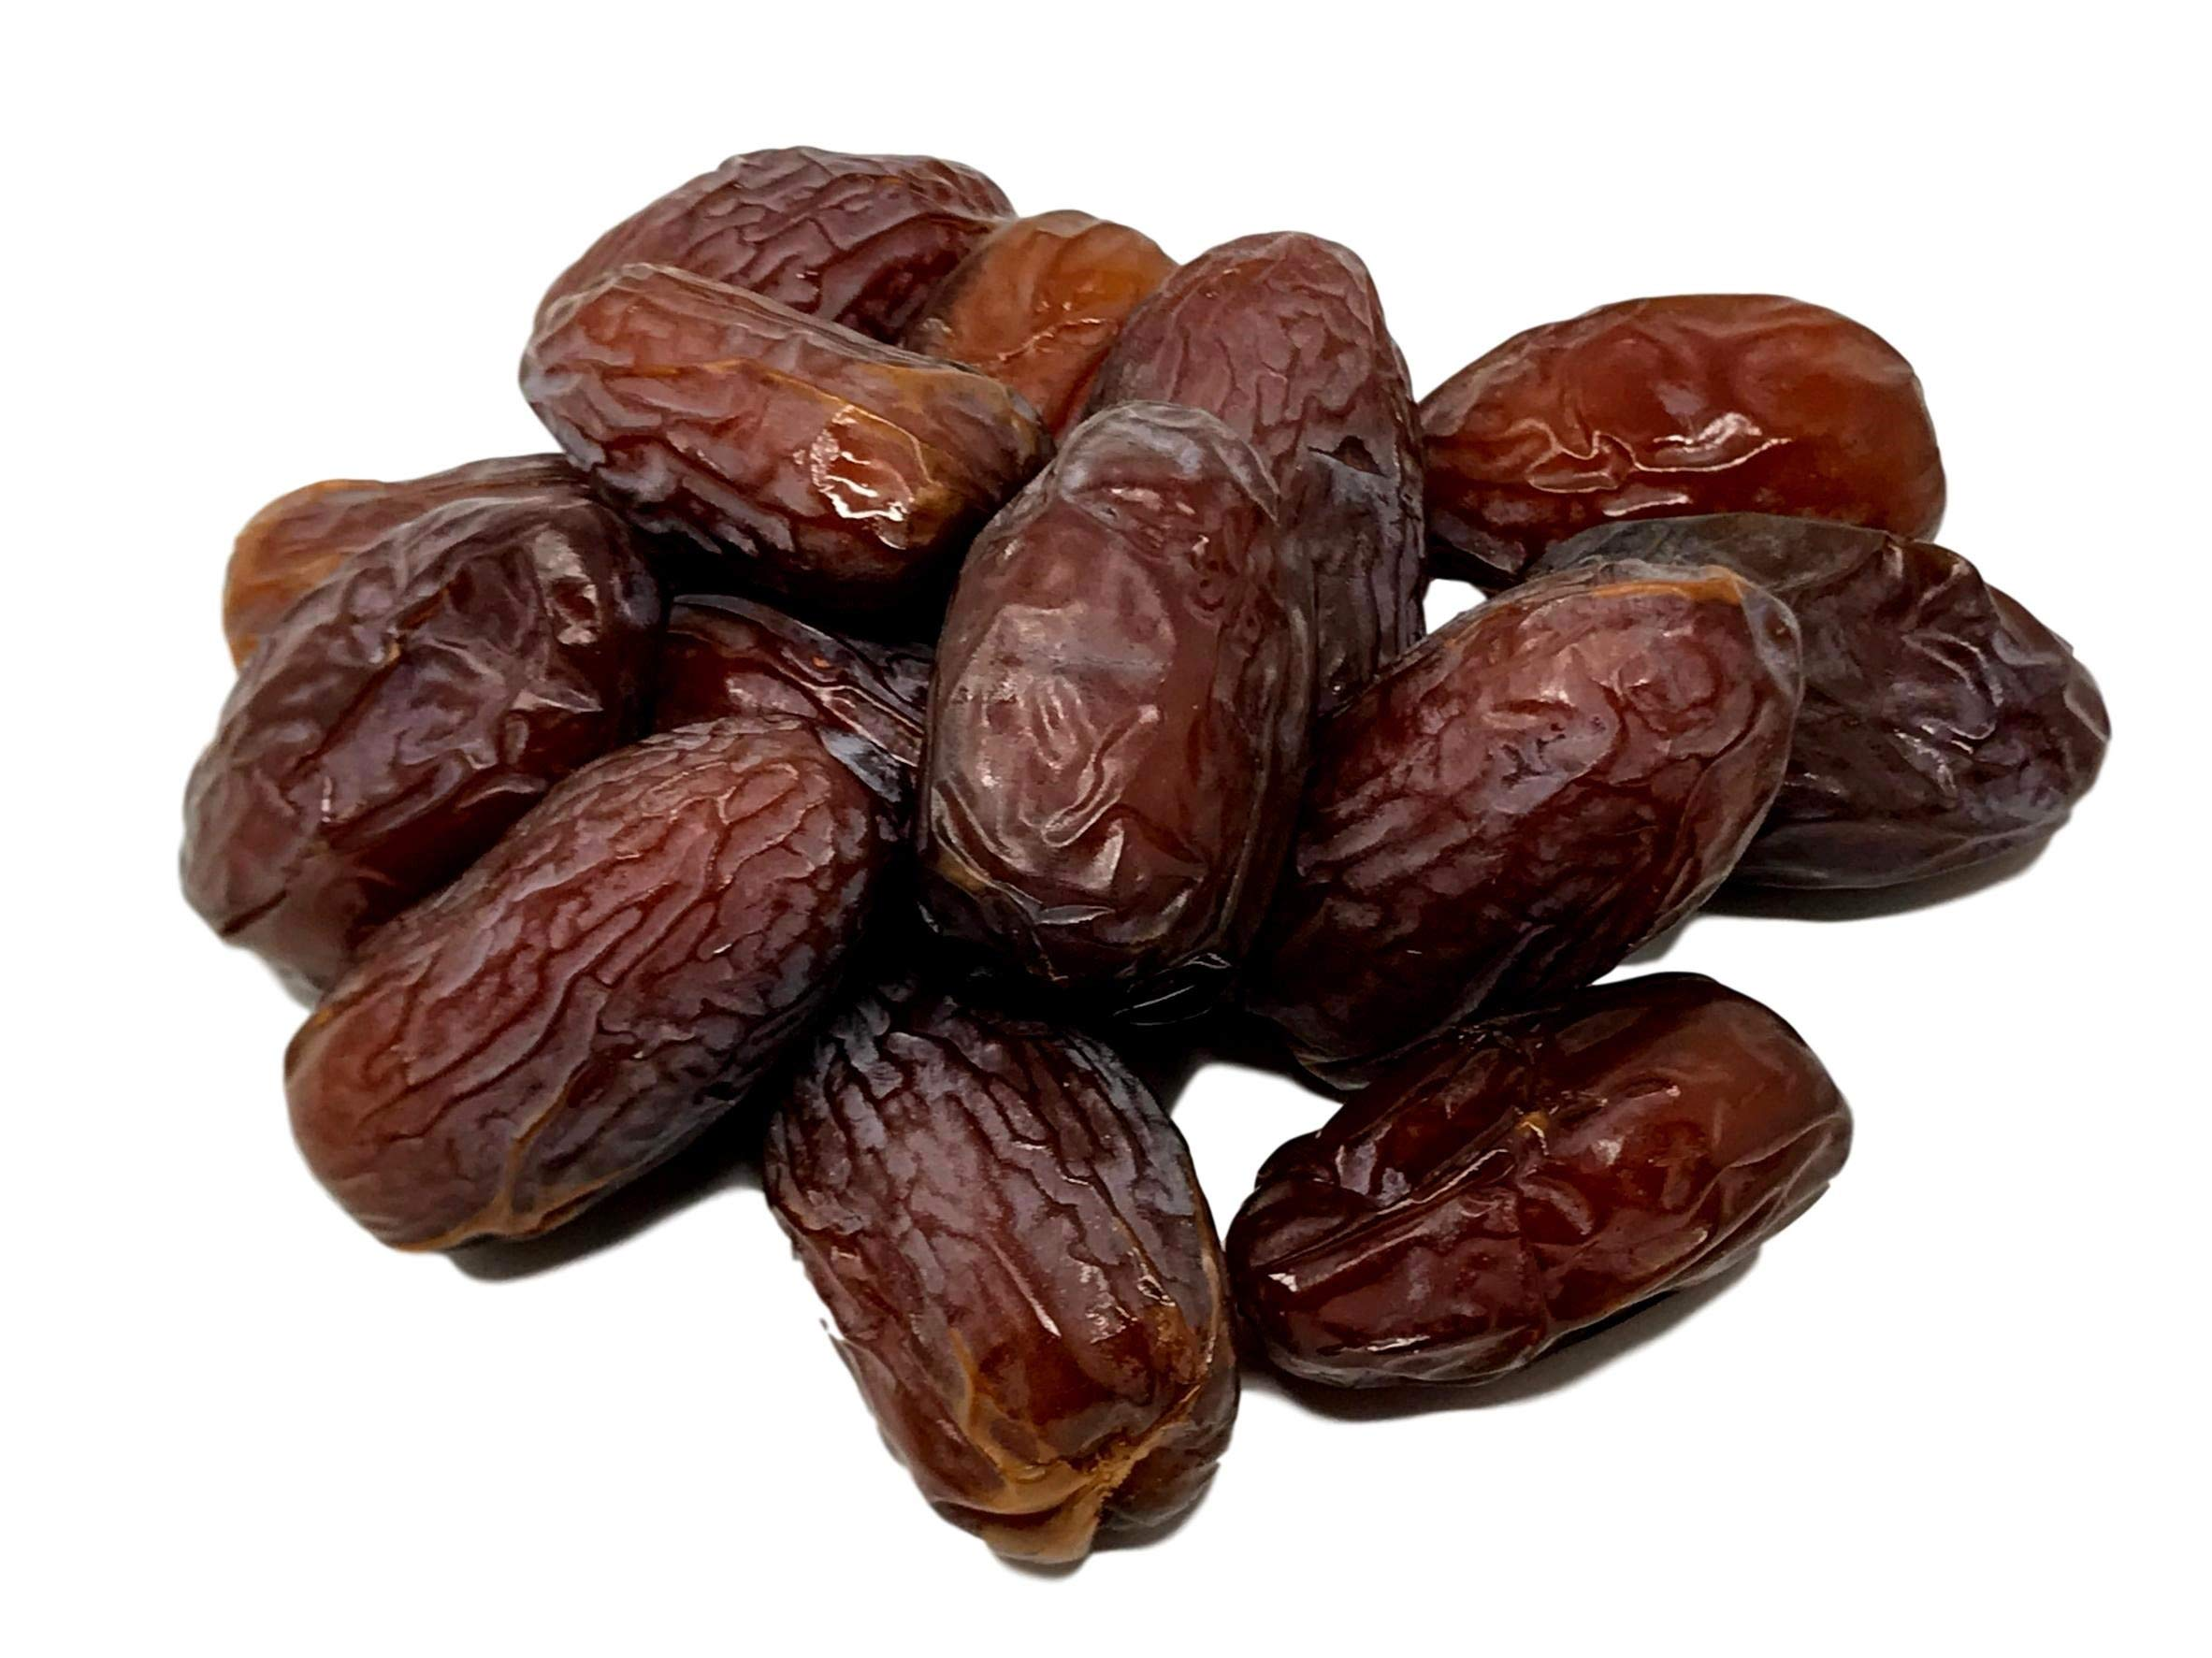 NUTS U.S. - Medjool Dates   Grown In California Desert   Juicy and Sweet   No Added Sugar and Preservatives   All Natural Dates!!! (1 LB)